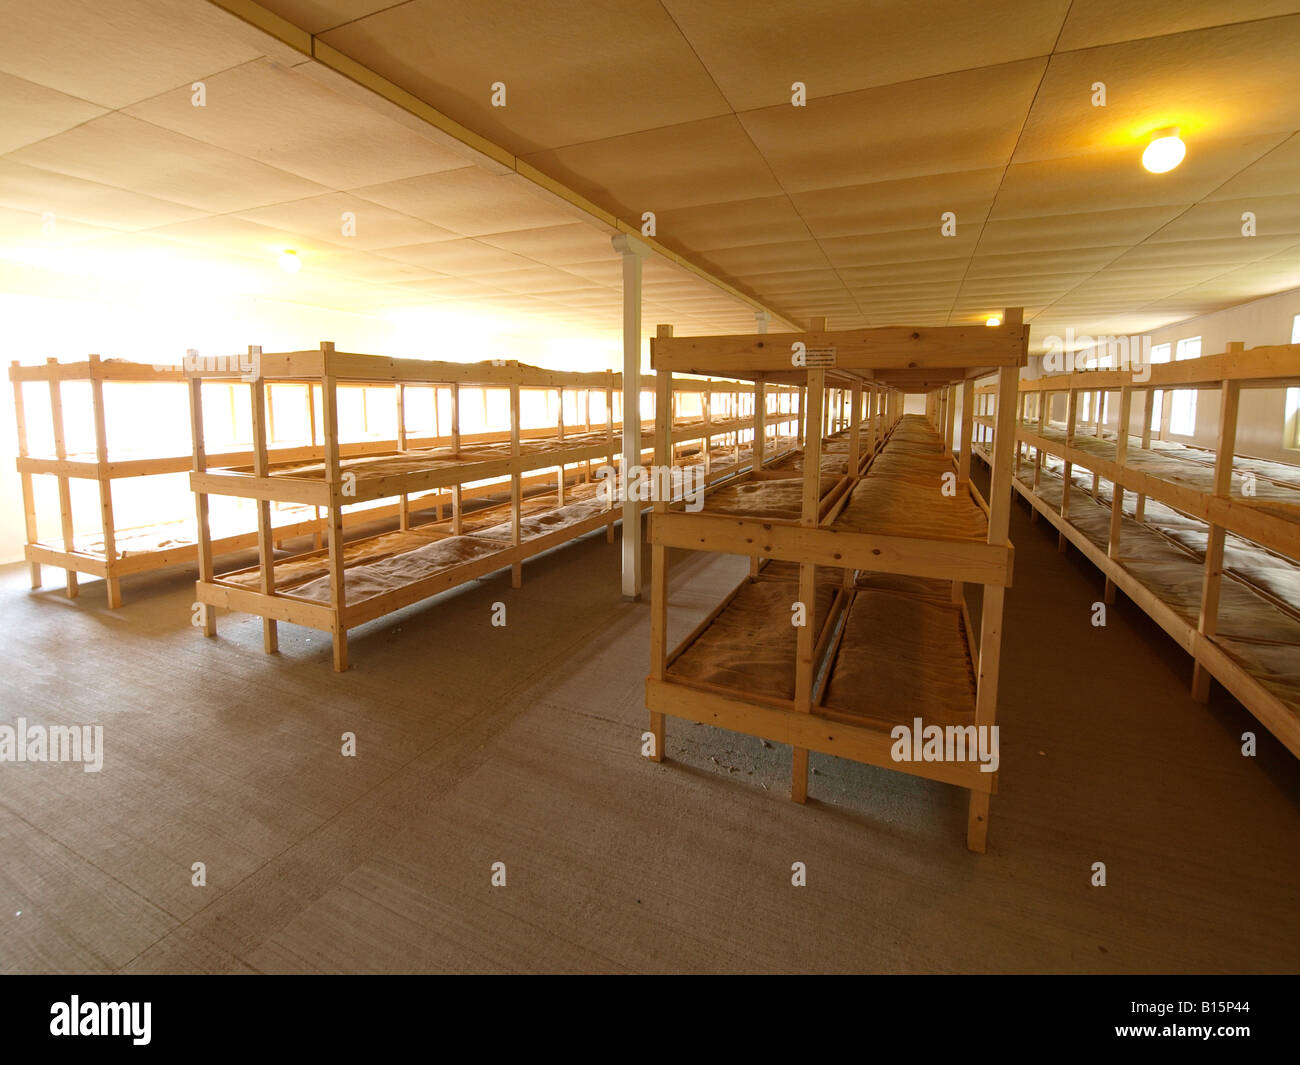 Barrack interior in the concentration camp Vught Noord Brabant the Netherlands national monument memorial museum - Stock Image